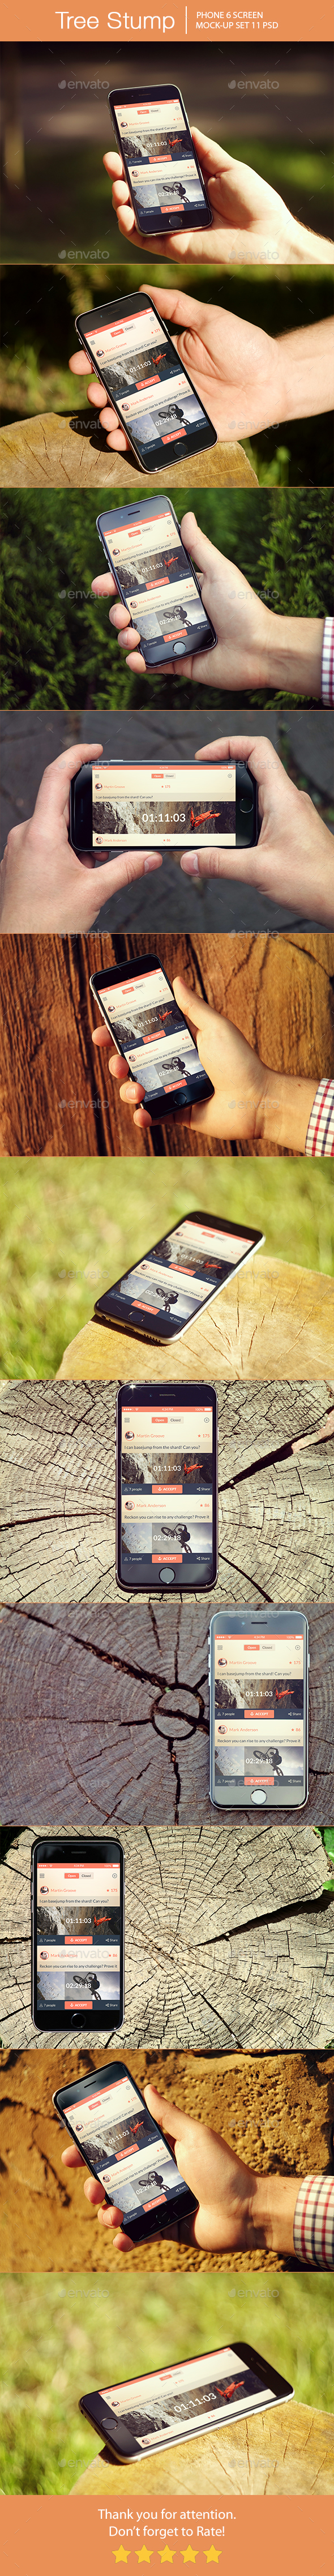 Tree Stump iPhone 6 Mockup - Mobile Displays